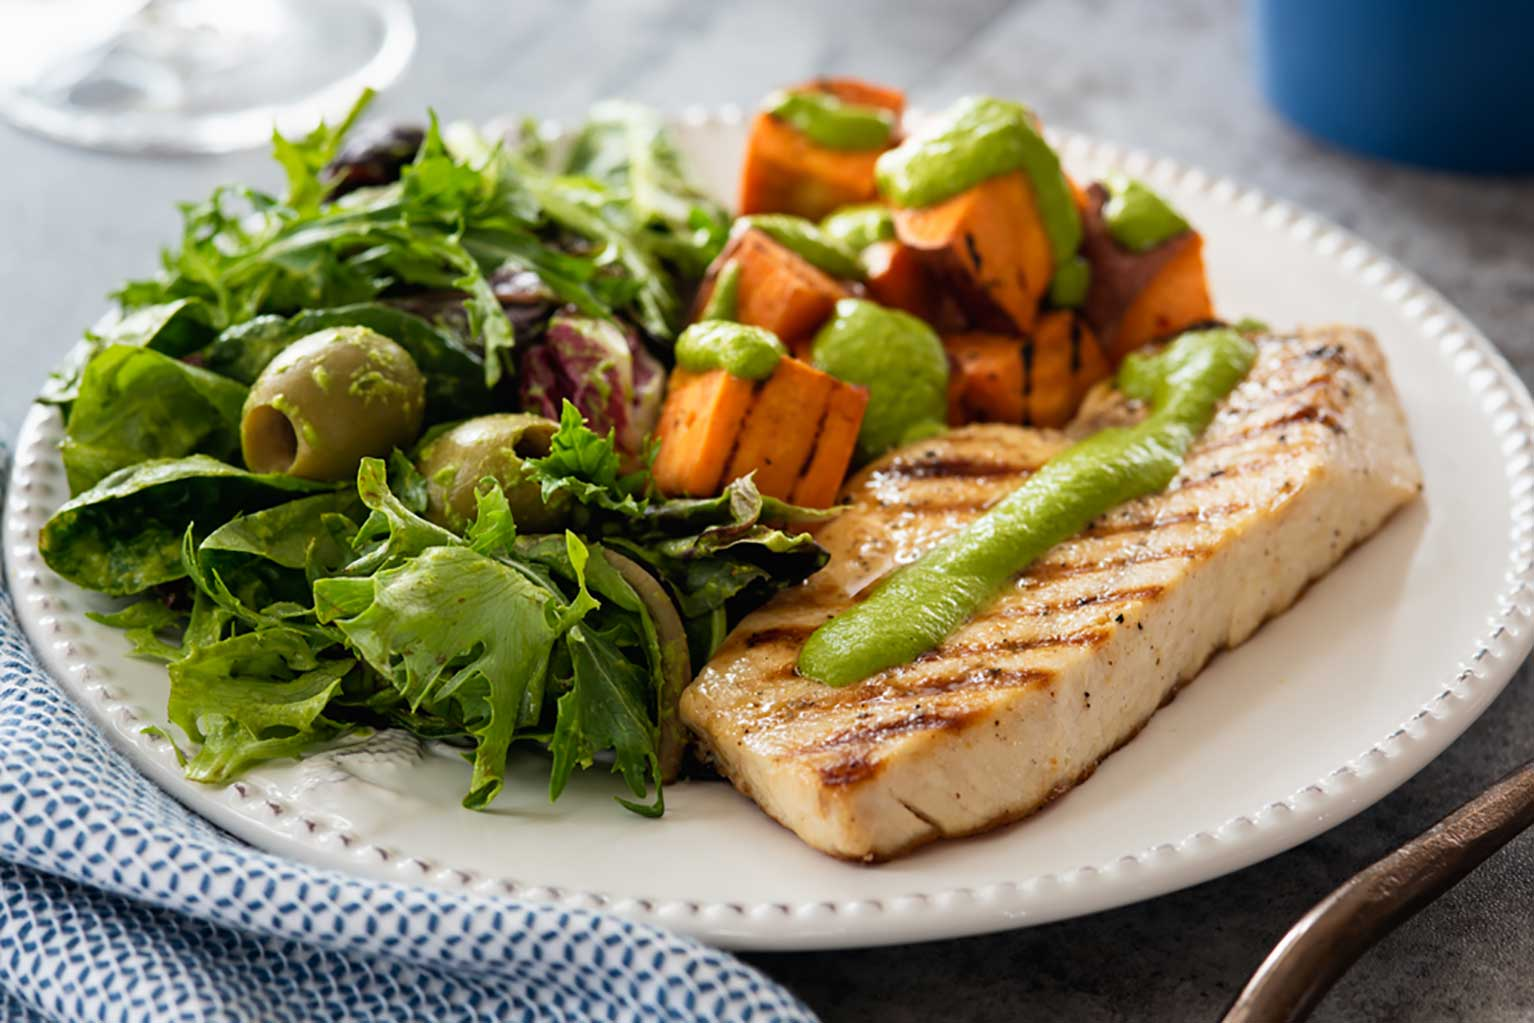 Grilled-swordfish-with-sweet-potatoes-&-side-salad